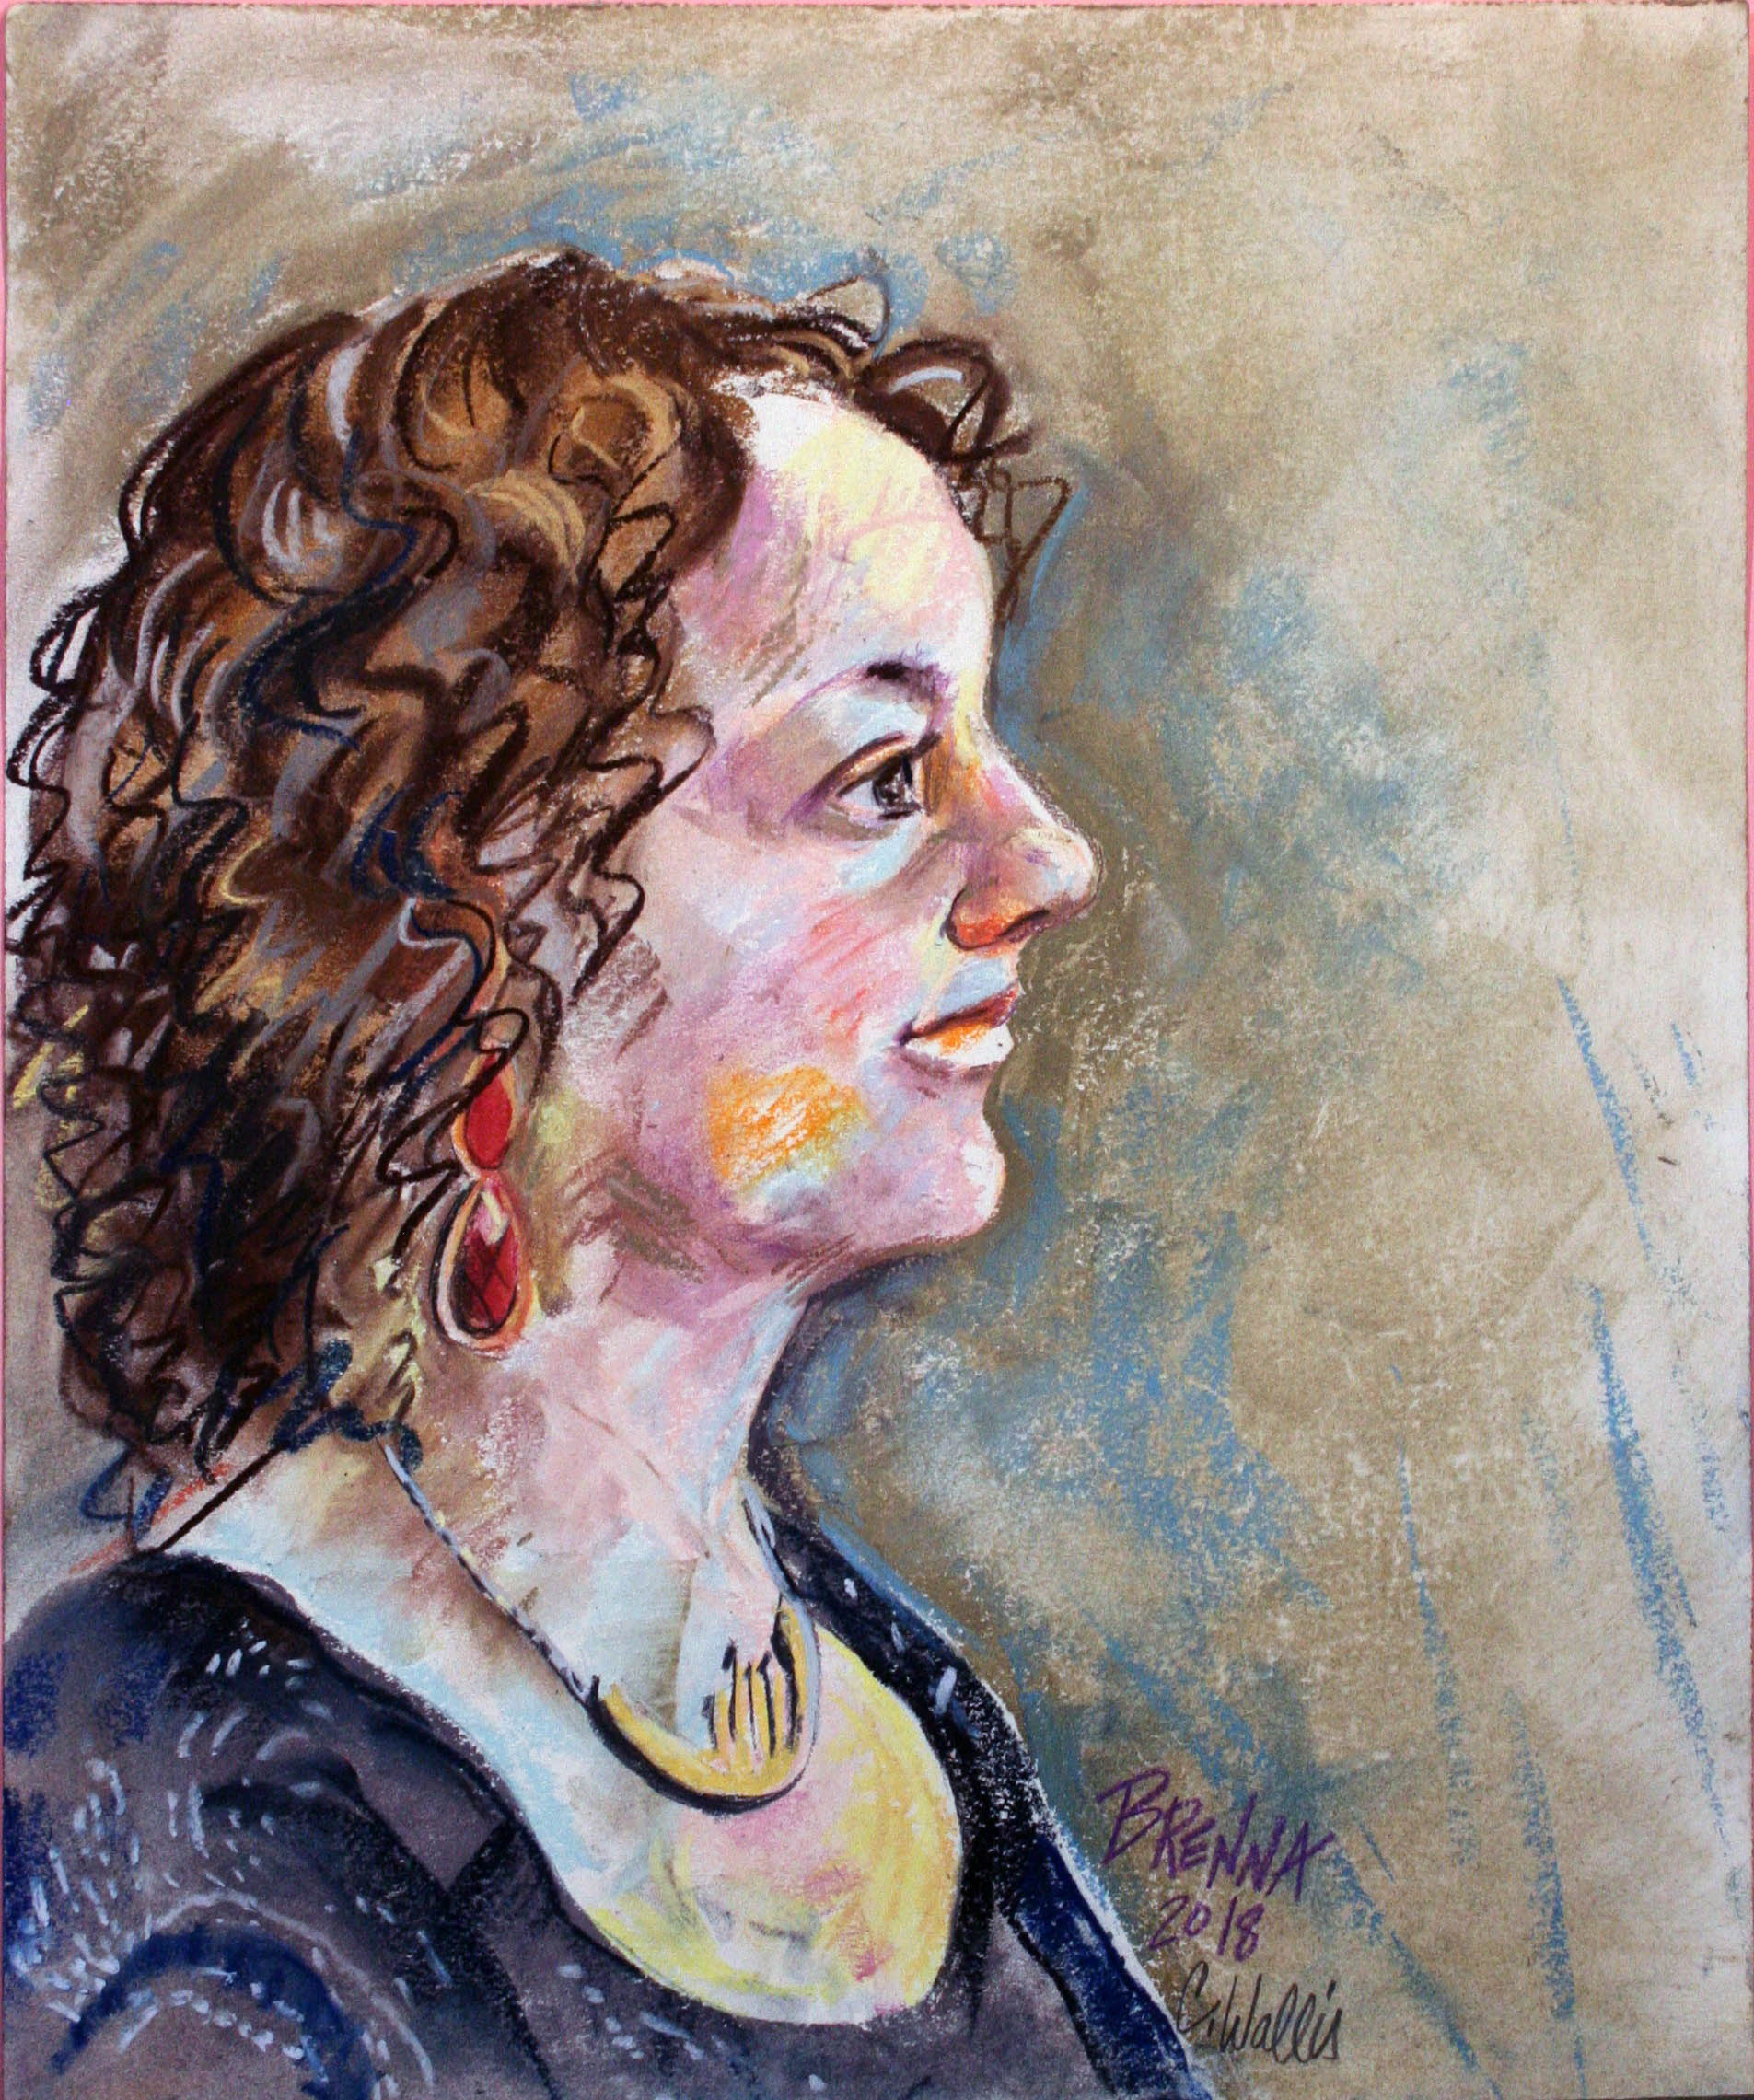 Christine Wallis did this pastel and conte drawing.